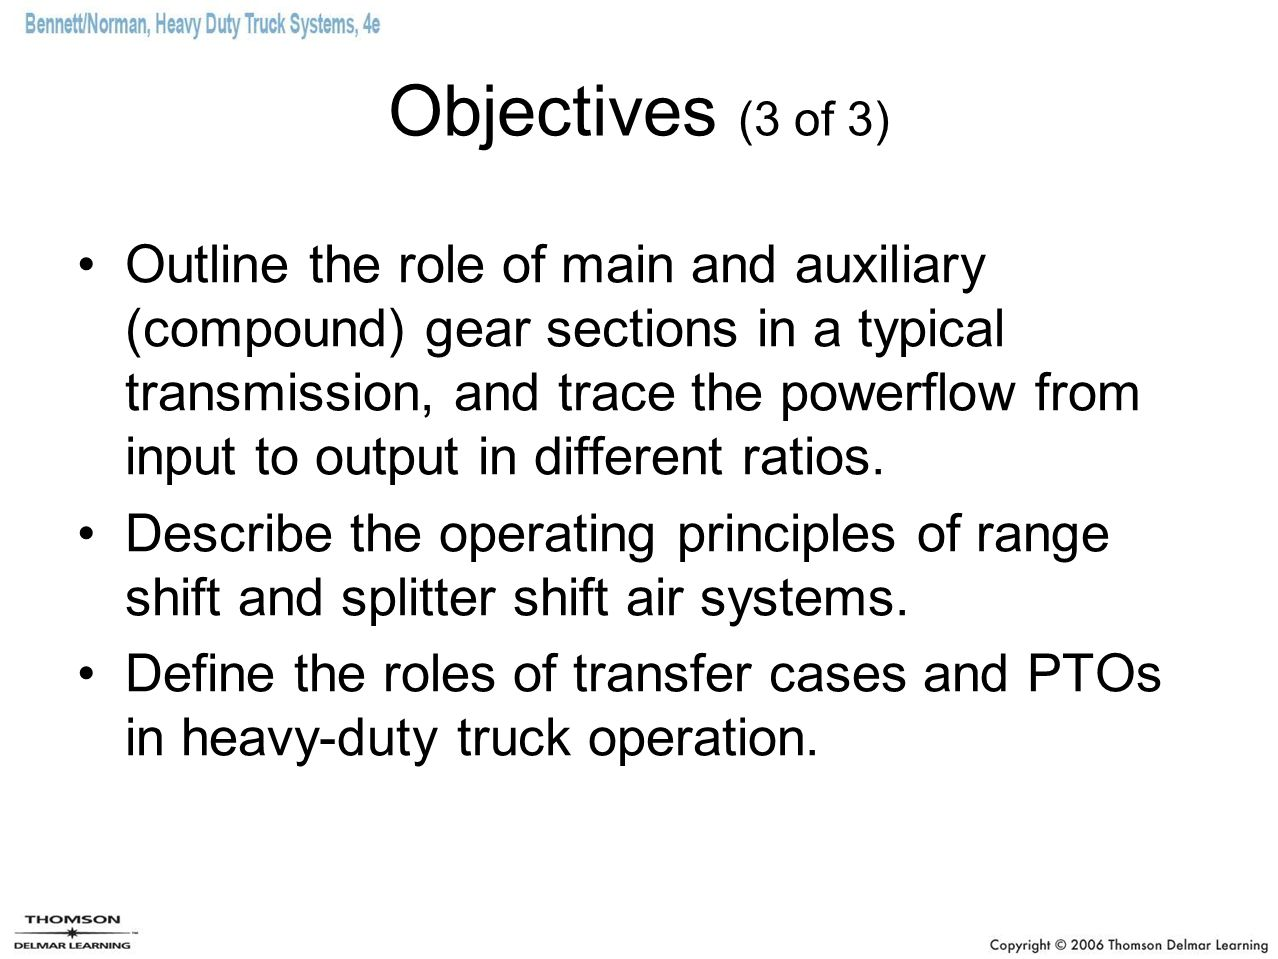 Objectives (3 of 3) Outline the role of main and auxiliary (compound) gear sections in a typical transmission, and trace the powerflow from input to o